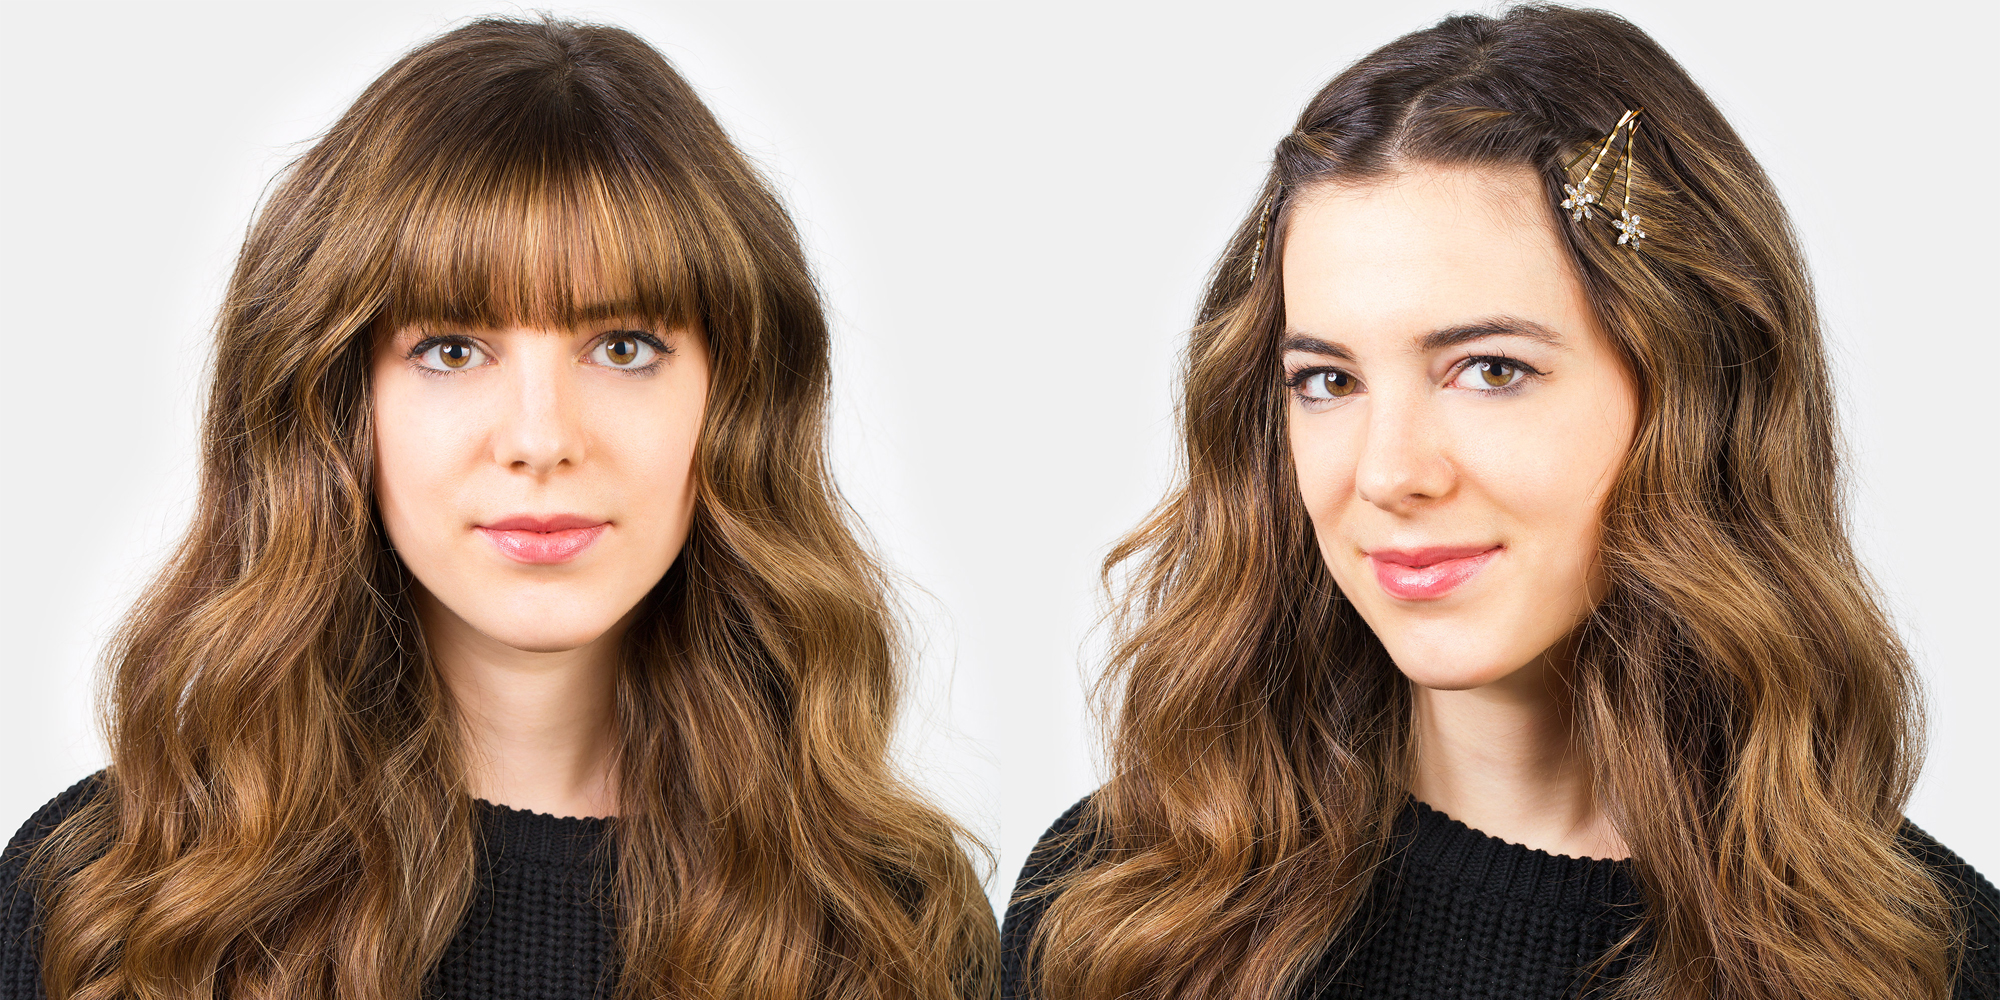 Ways To Style Thin Hair: 5 Hairstyles To Keep Your Bangs Out